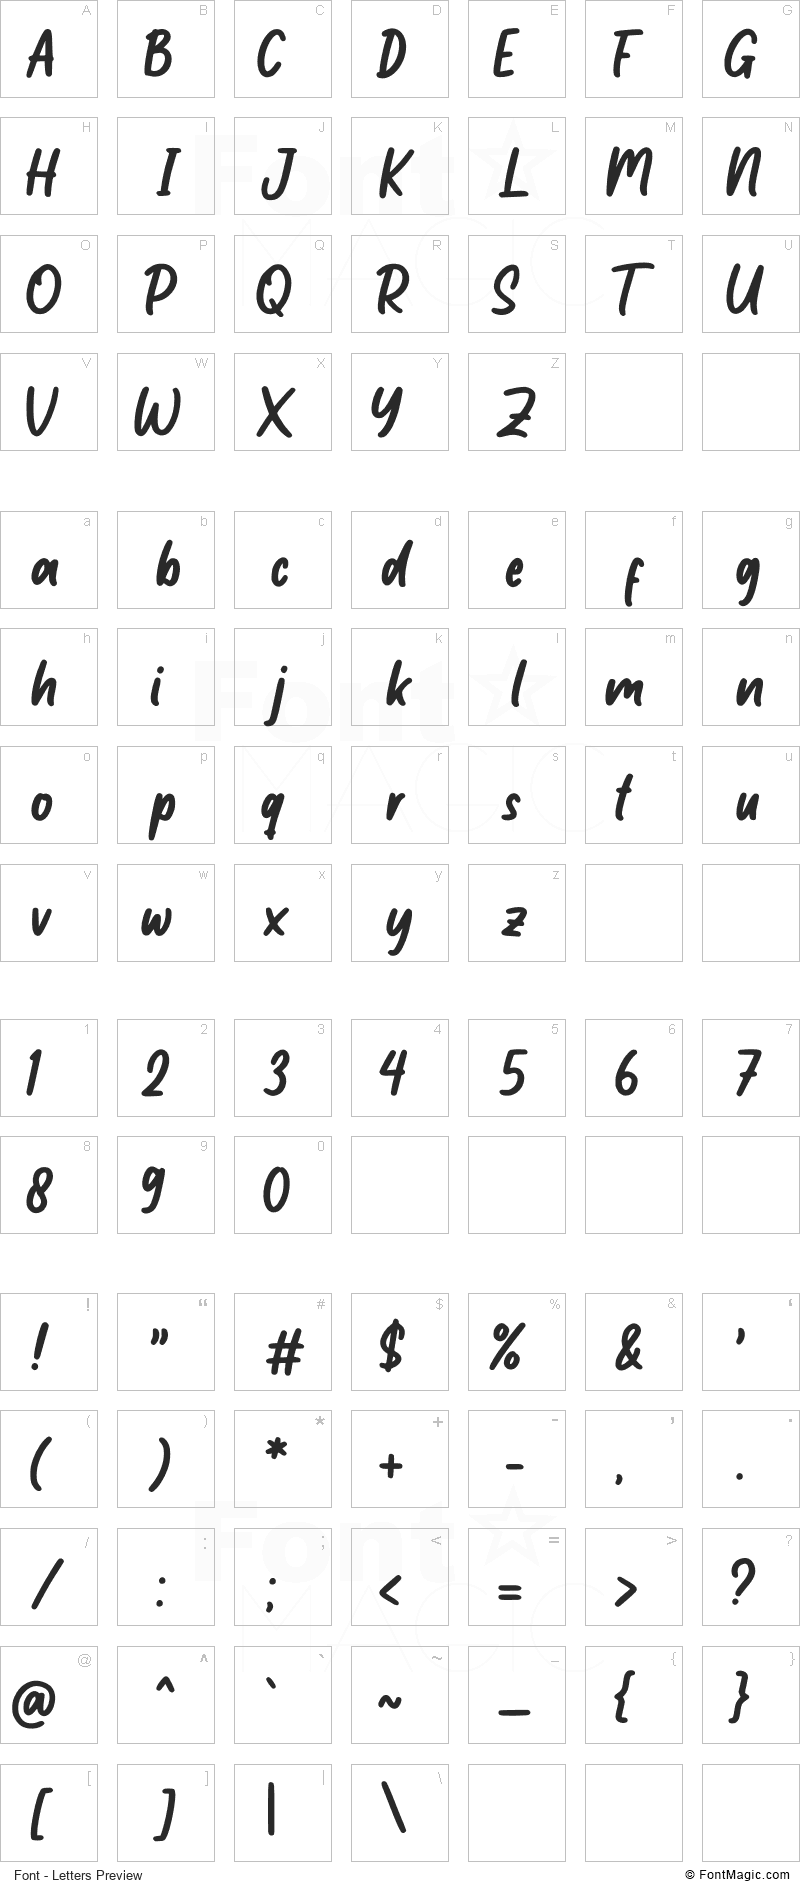 Little Student Font - All Latters Preview Chart